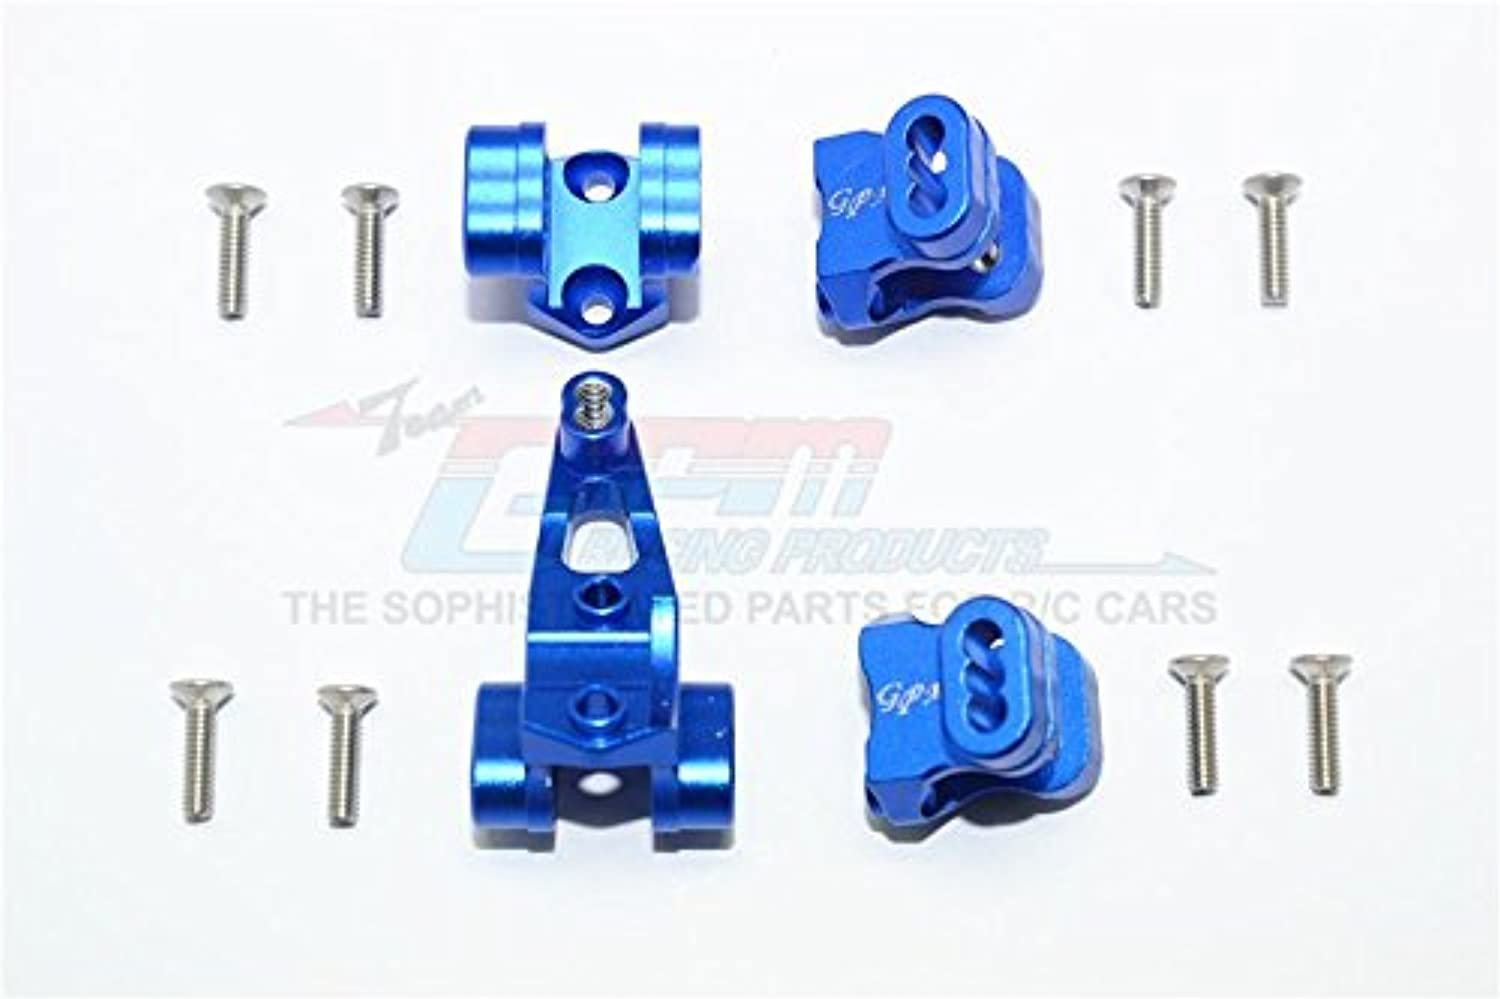 Traxxas TRX-4 Trail Defender Crawler Upgrade Parts Aluminum Front Rear Axle Mount Set For Suspension Links - 4Pc Set bluee